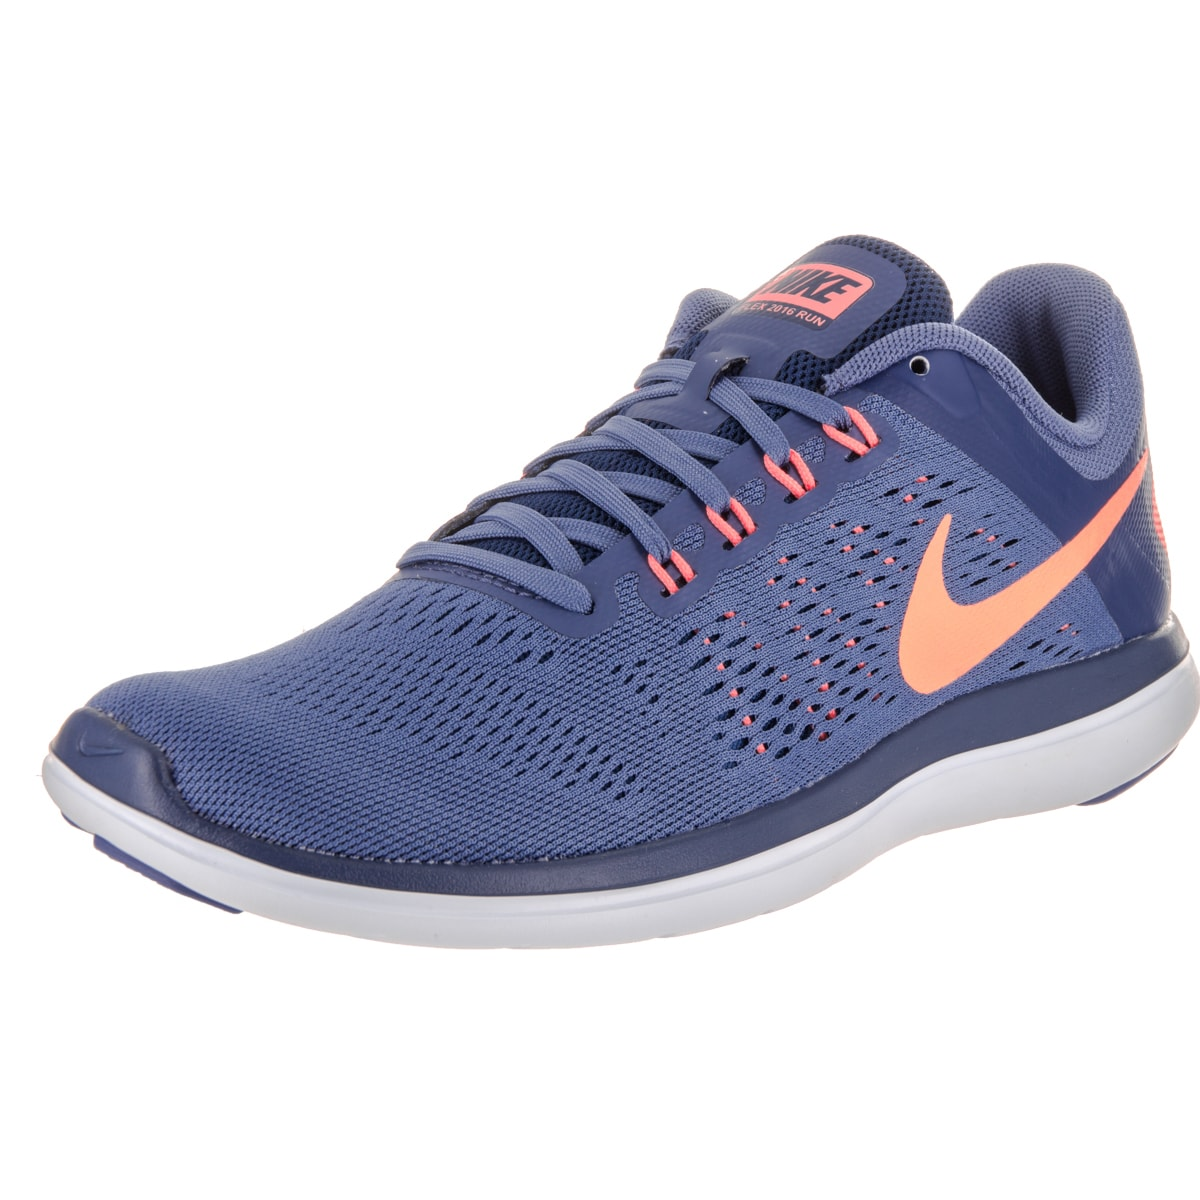 94bc288a3e315 Shop Nike Women s Flex 2016 RN Running Shoe - Free Shipping Today -  Overstock - 14193439